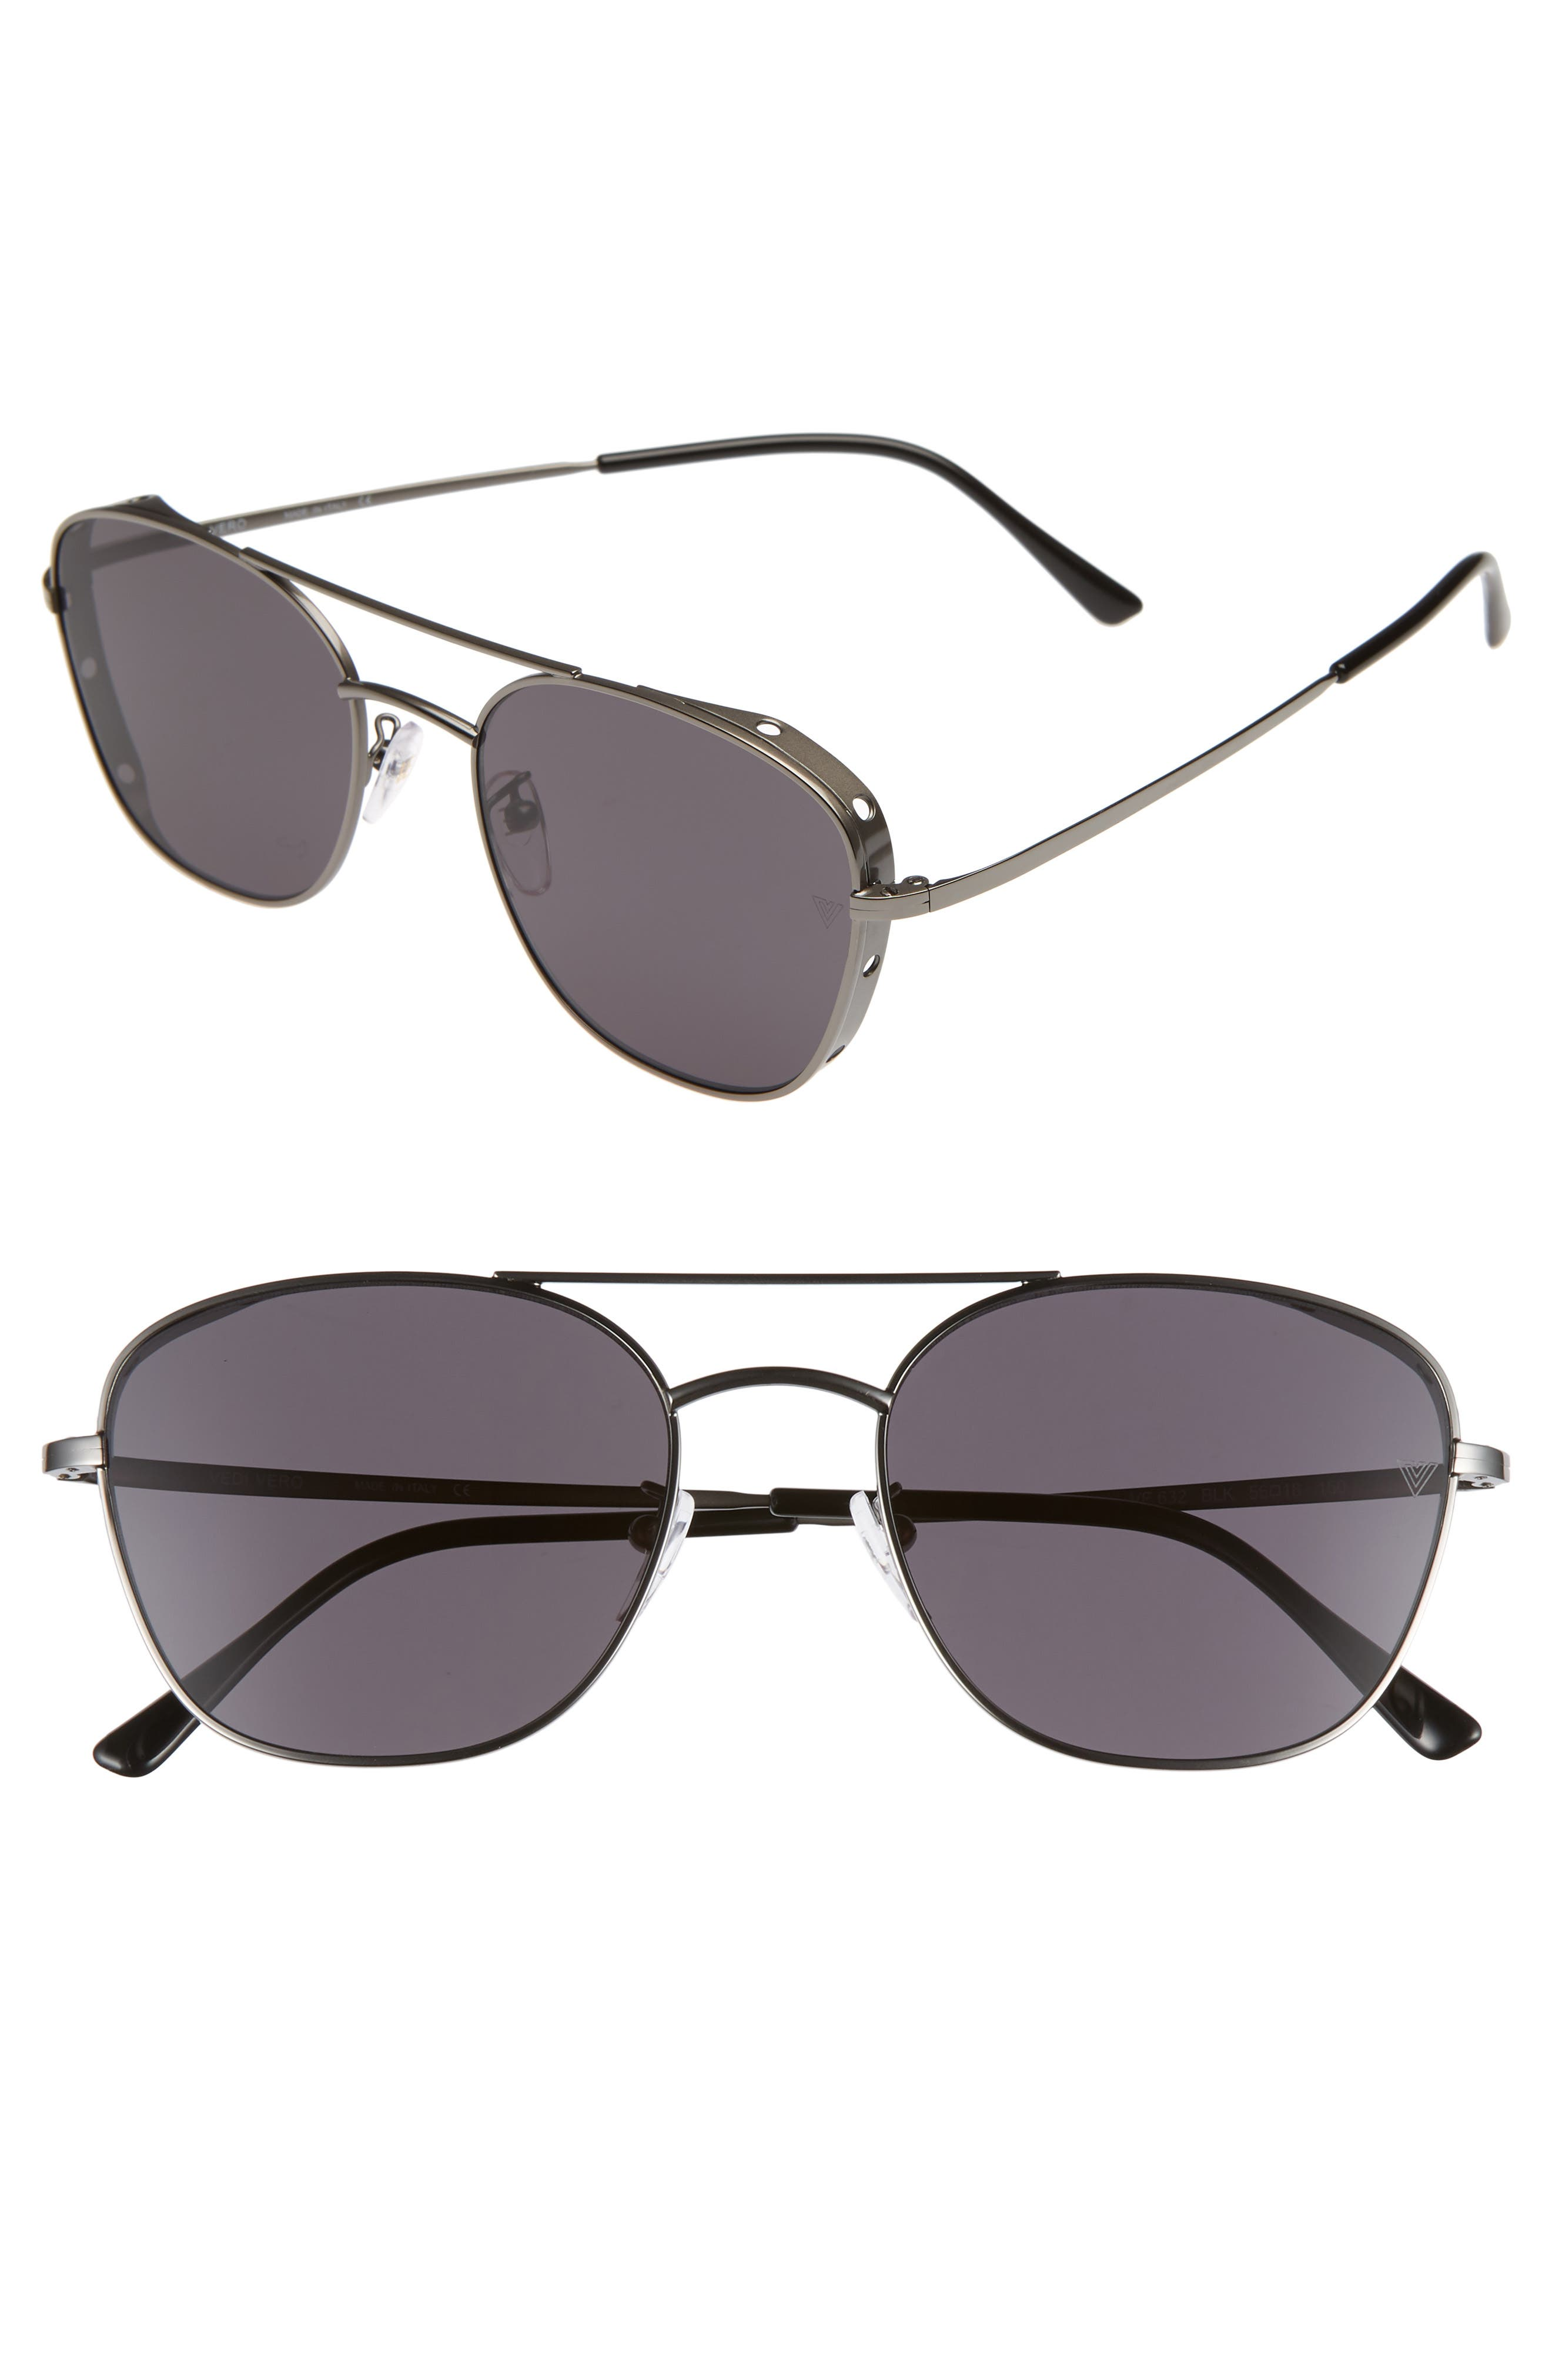 VEDI VERO 56Mm Aviator Sunglasses - Charcoal